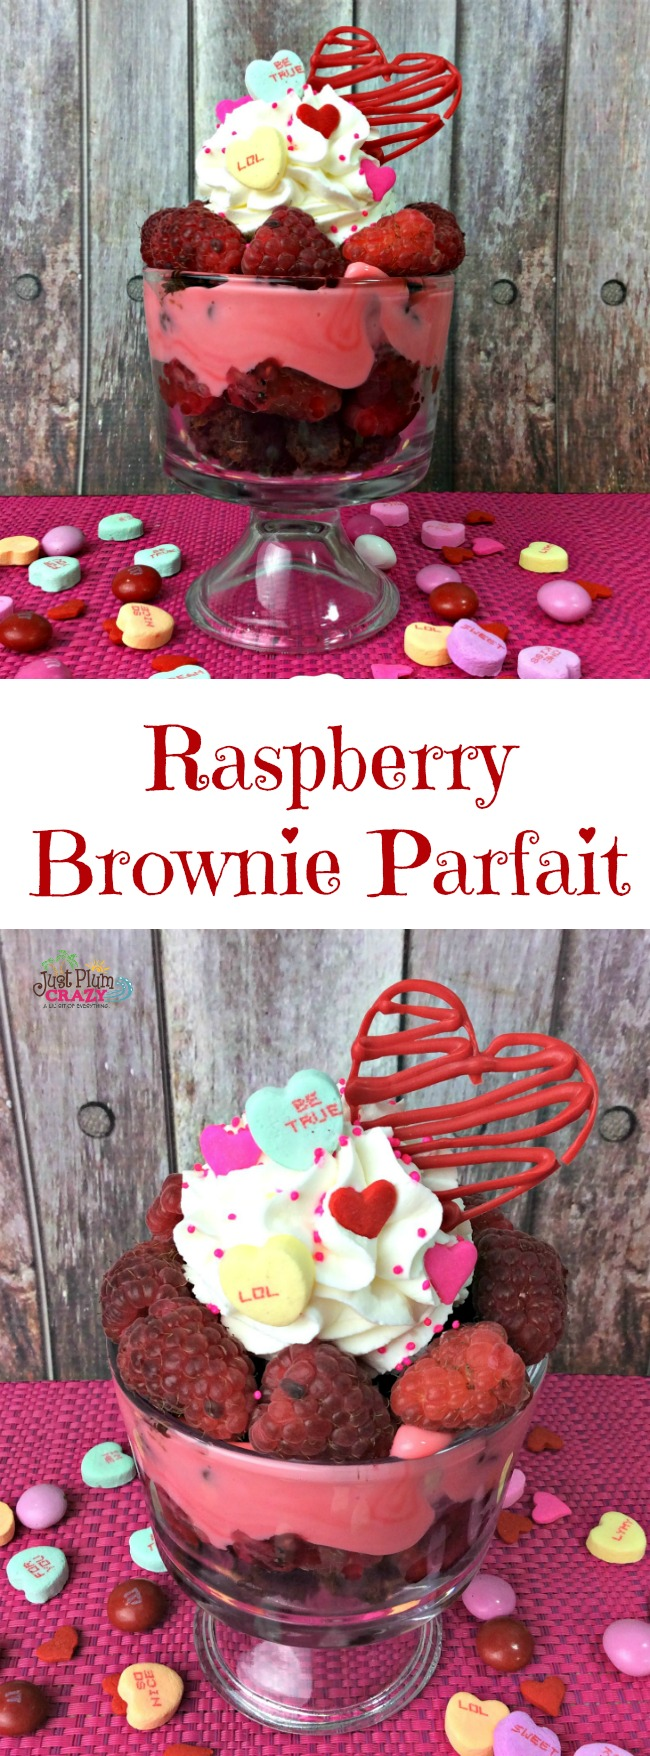 With Valentine's Day just a week away, we are focusing on easy desserts like this Raspberry Brownie Parfait Recipe, made with pre-made brownies.